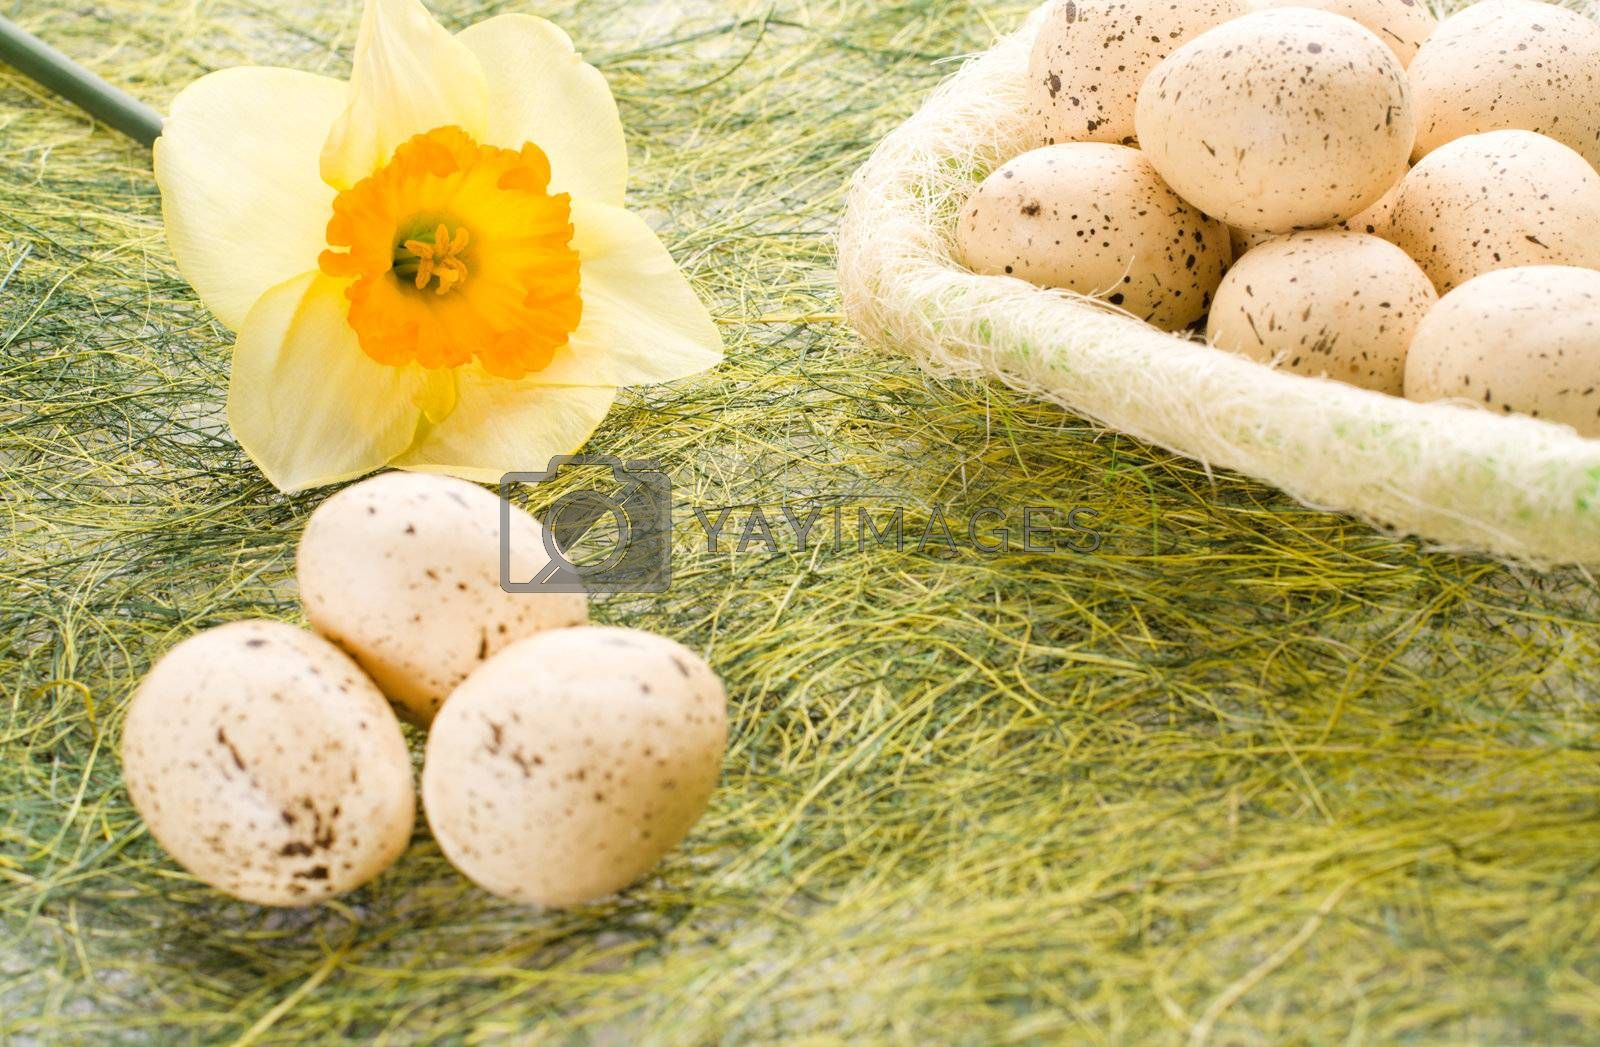 Daffodil and full basket with decorated speckled easter eggs